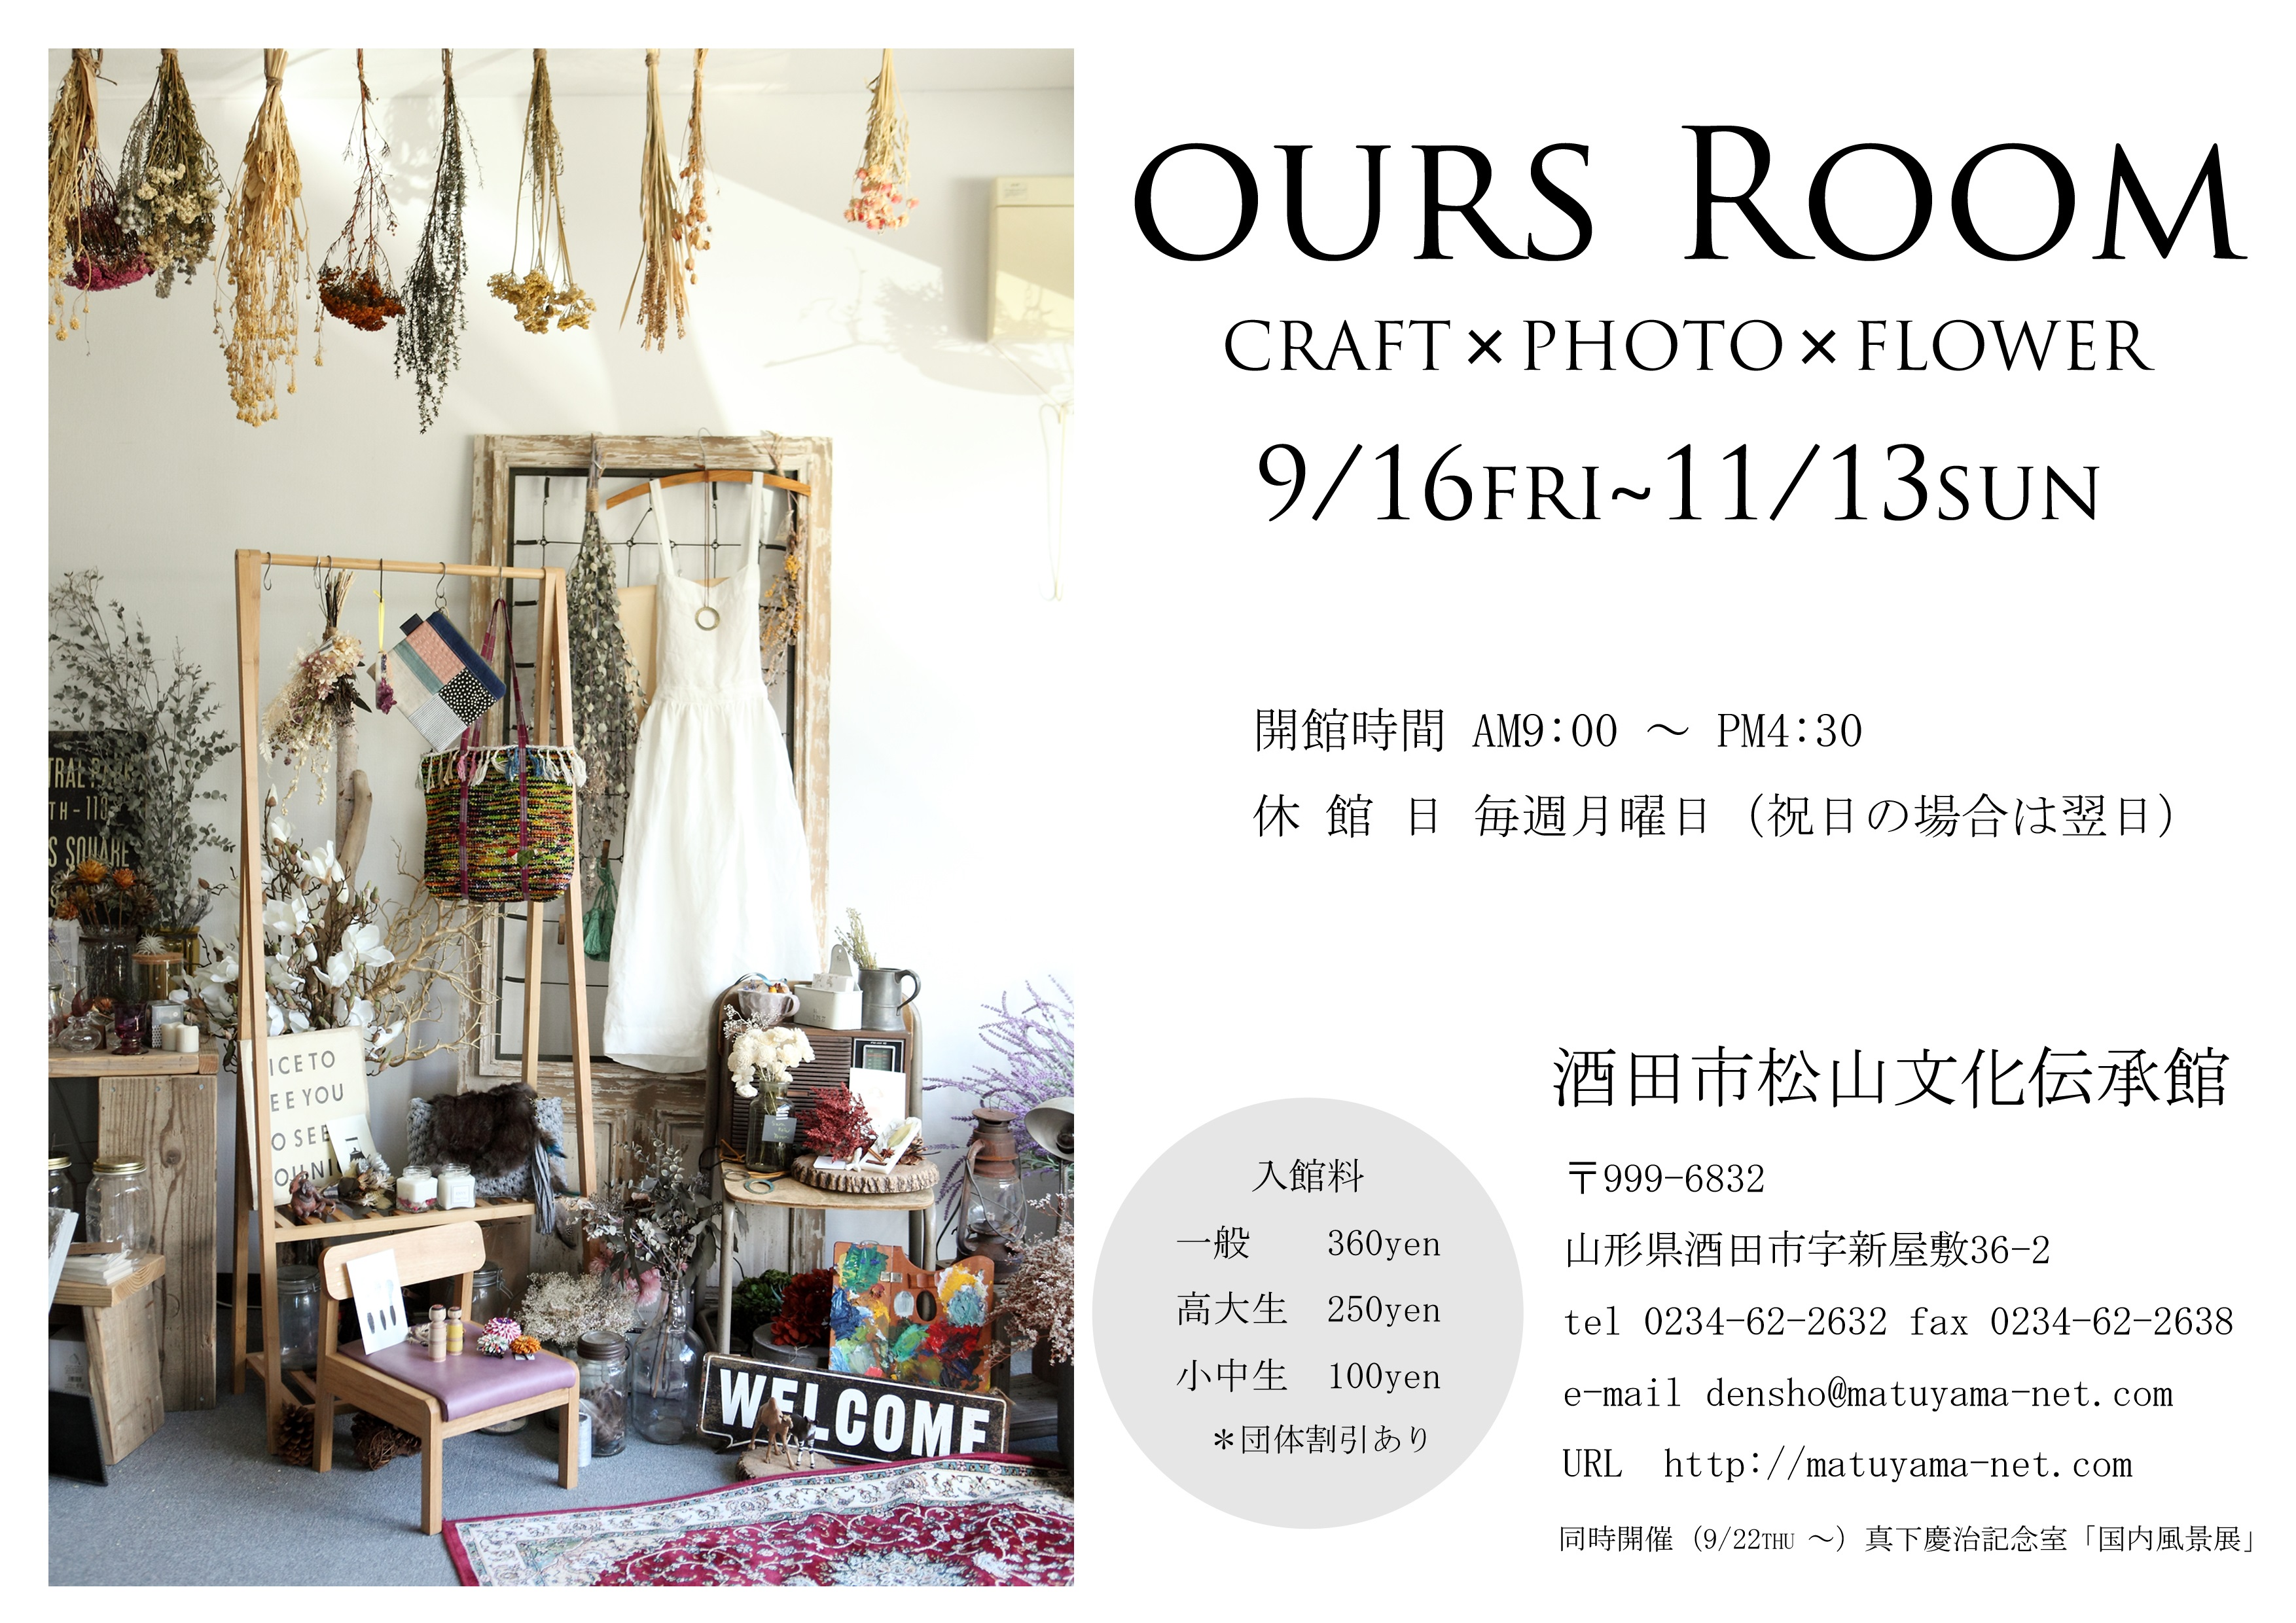 OURSROOM表